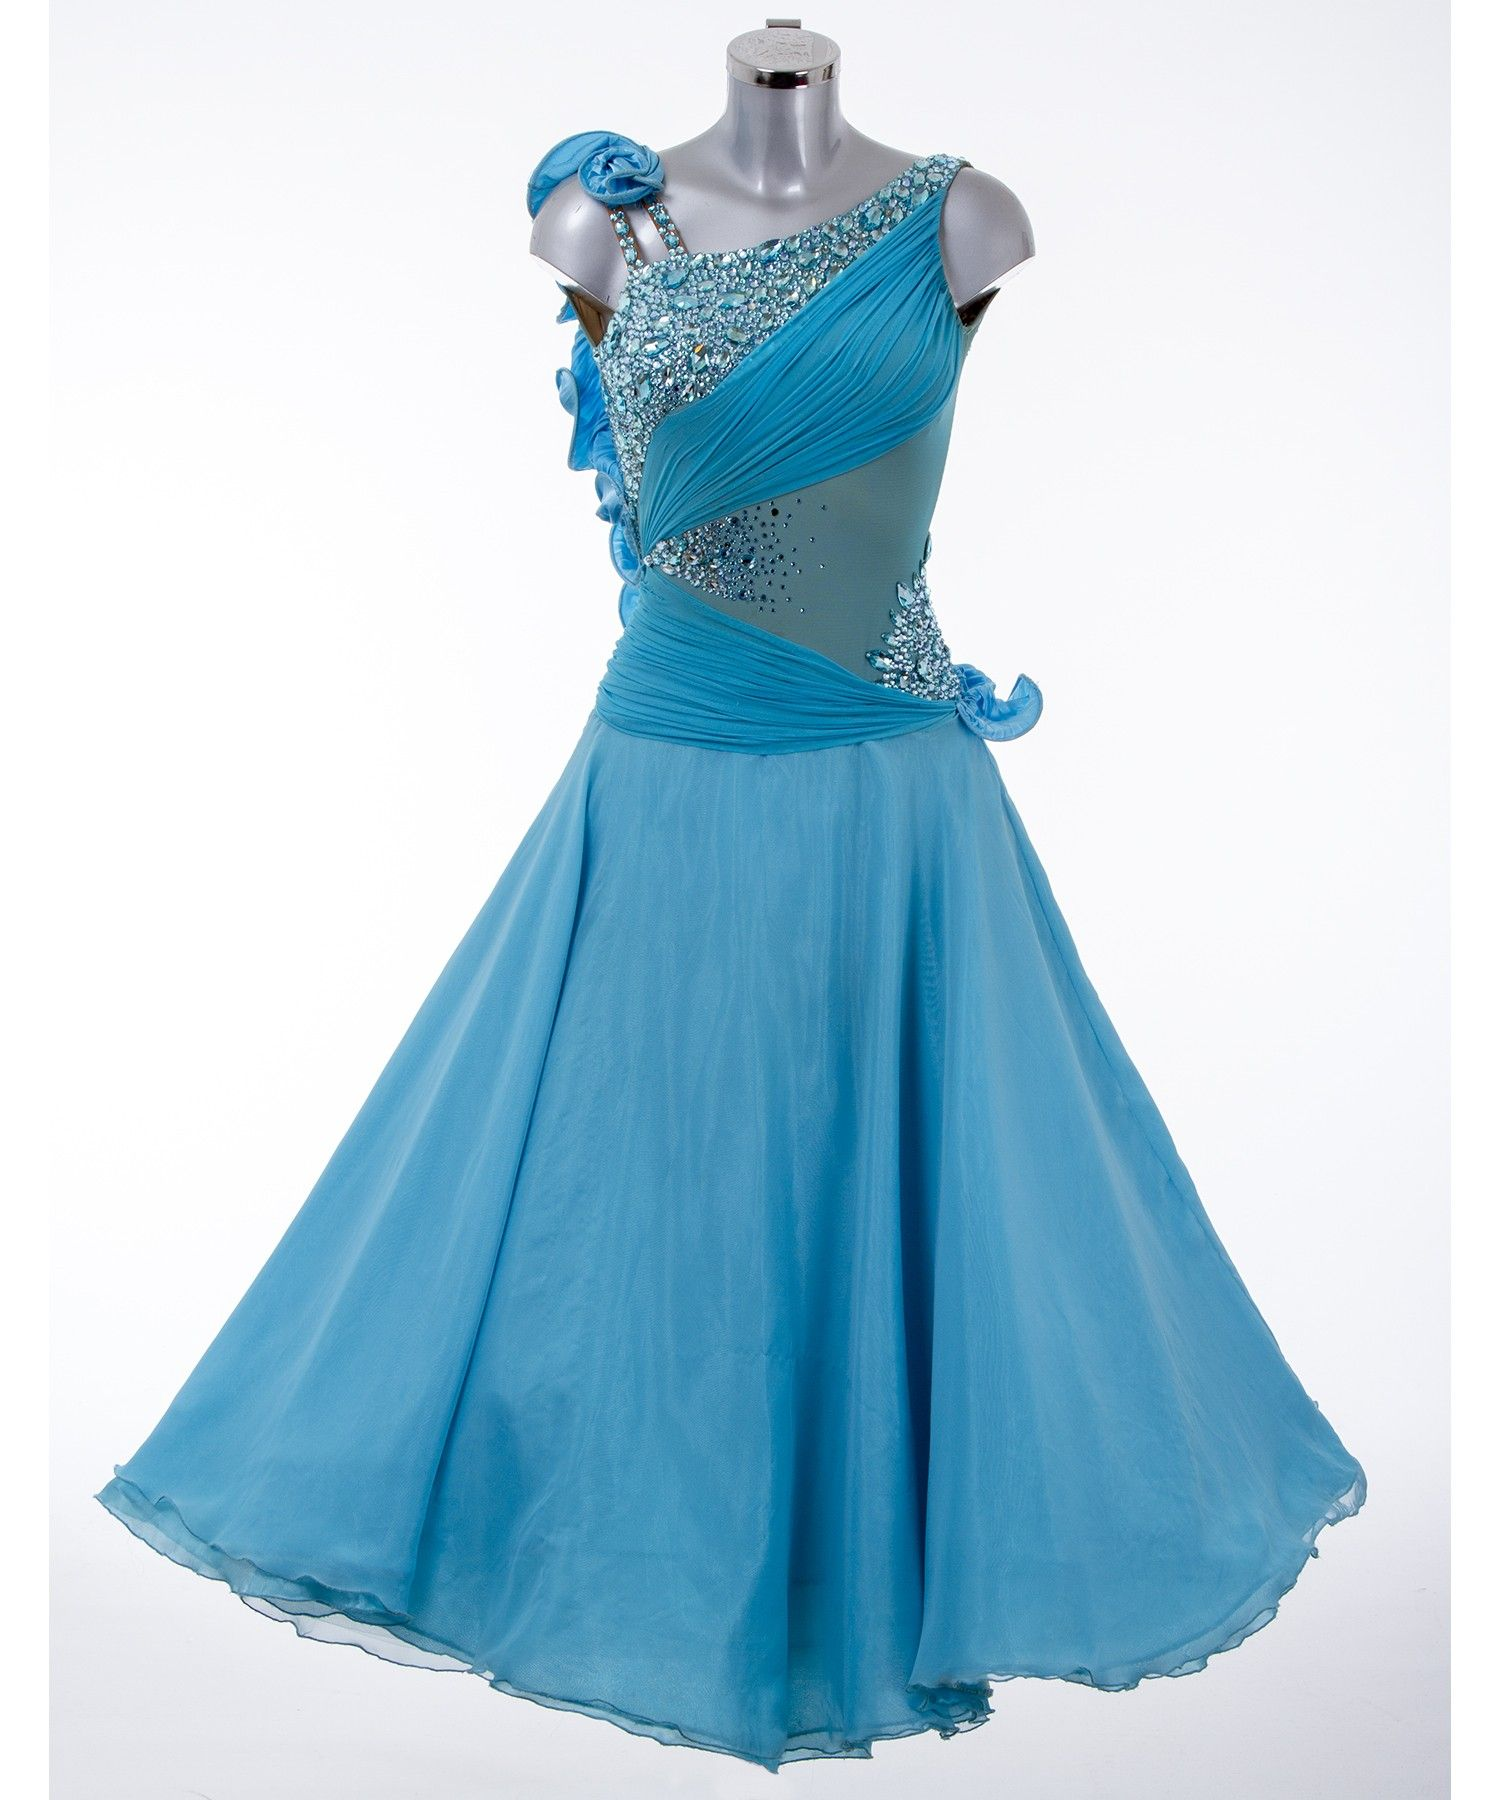 DSI London 354272 Turquoise Ballroom Dress Consisting of Turquoise Mesh, Georgette and Satin. This Ballroom Dress has Aqua Bohimica stones to tone in with the fabrics.